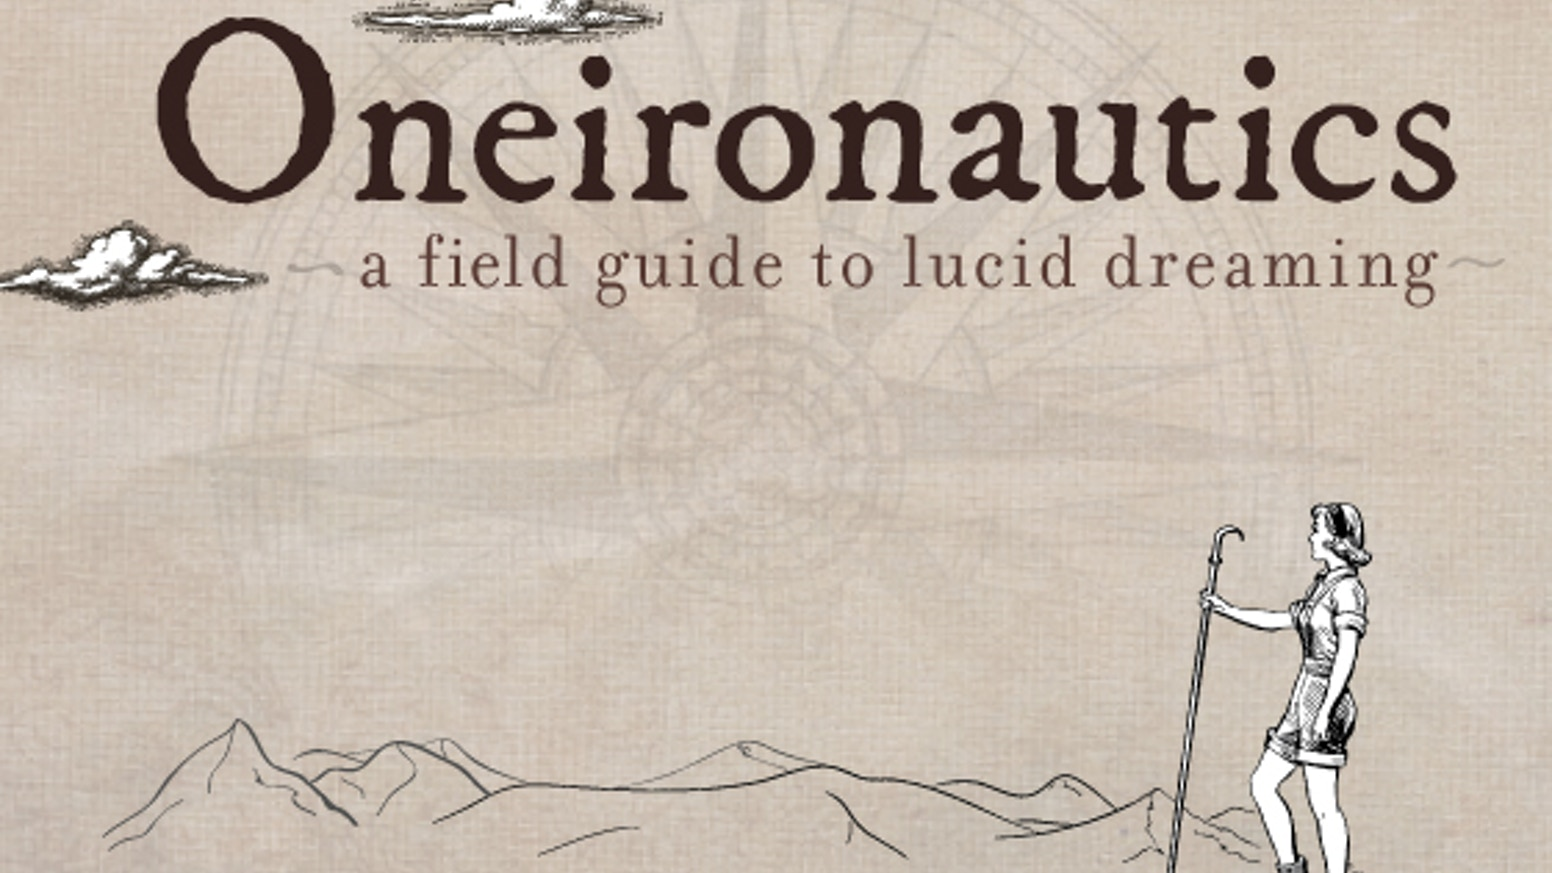 Oneironautics - A Field Guide to Lucid Dreaming by Thomas